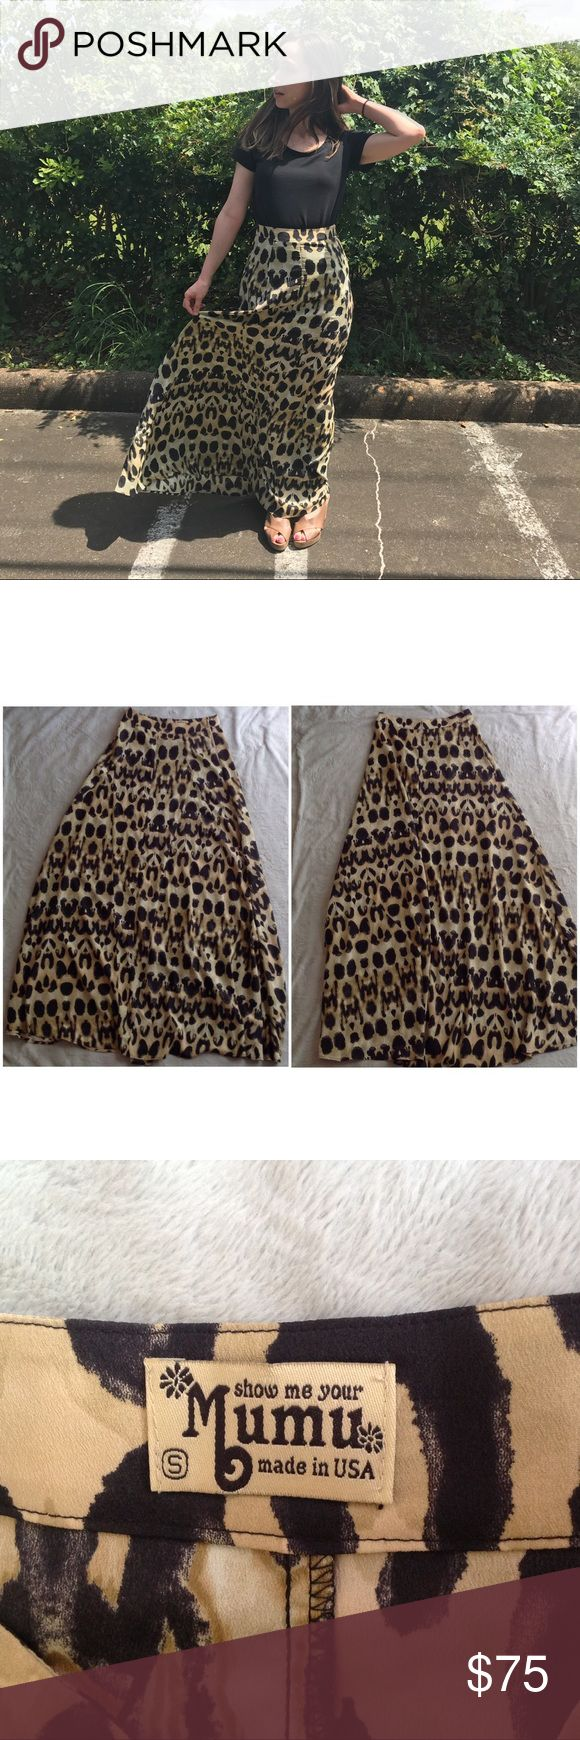 "Show Me Your Mumu Princess Di Leopard Maxi Skirt Excellent used condition. Princess Di Ballgown Skirt by Show Me Your Mumu in leopard print (looks like Momma Cat print). Beautiful and flattering high waisted maxi skirt with a side zip and gorgeous draping. Size small, see photos for measurements. // Model stats: 5'5"", 120 lbs Show Me Your MuMu Skirts Maxi"